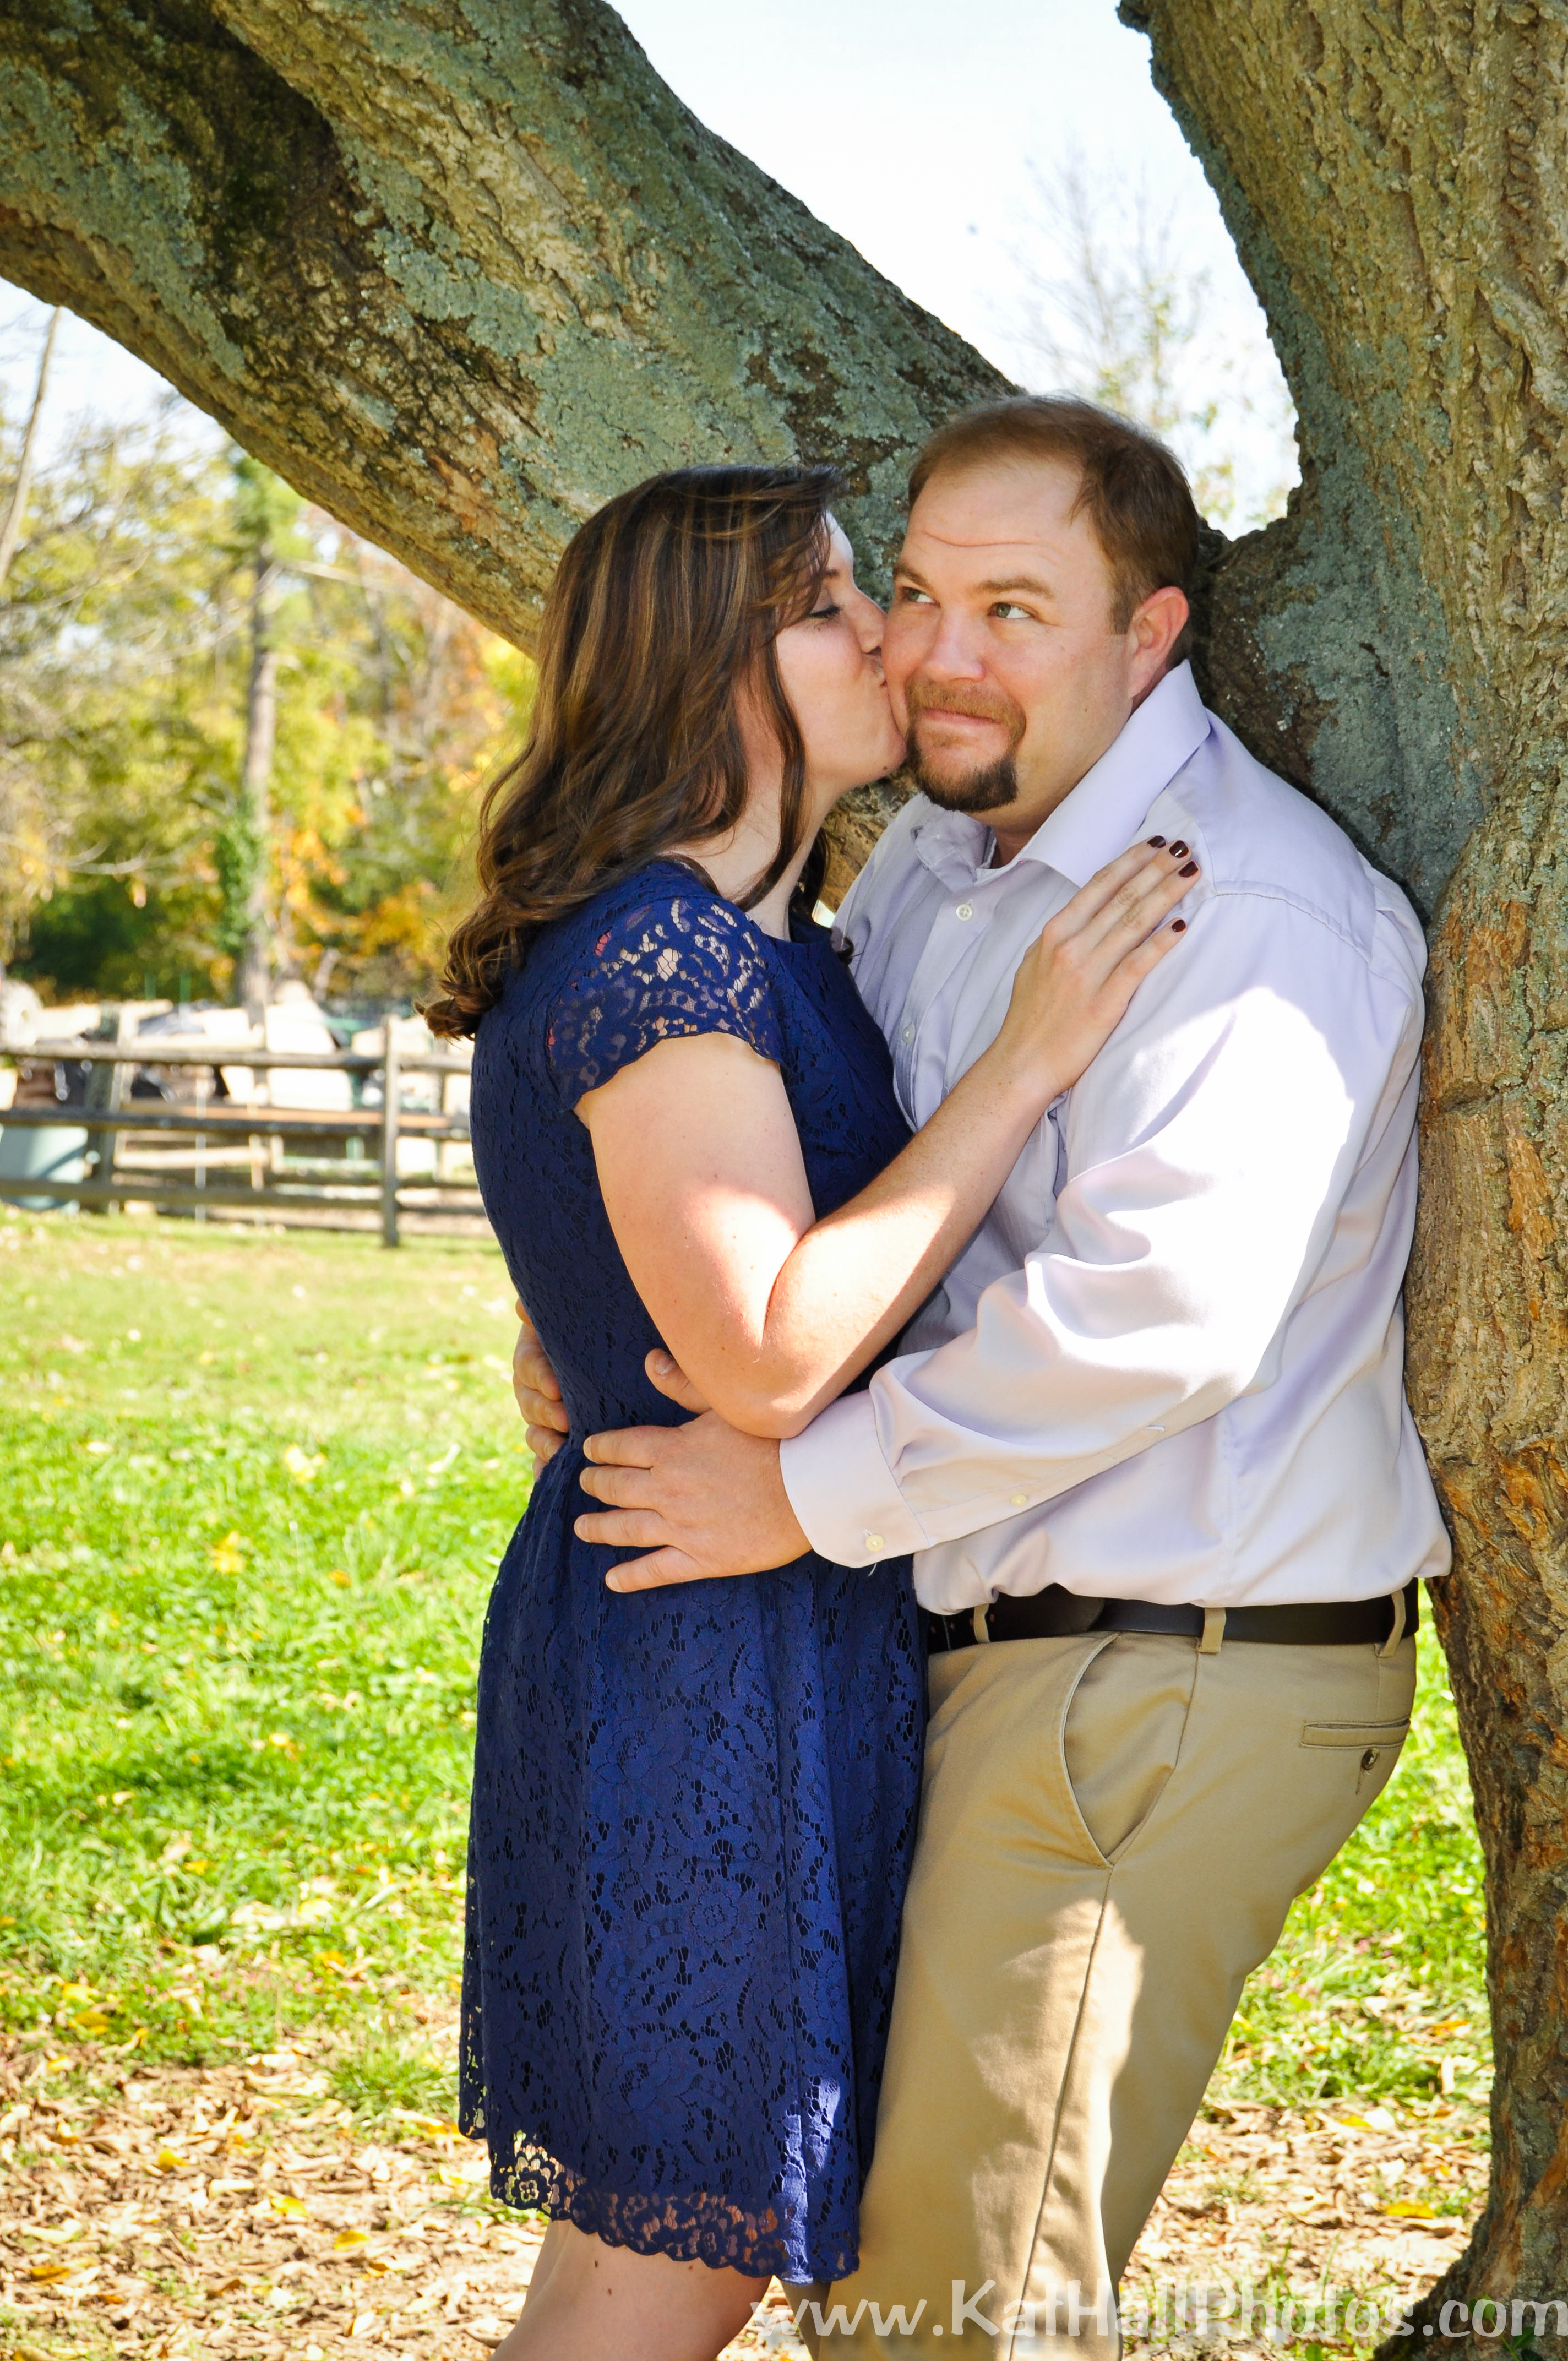 NKY Engagements